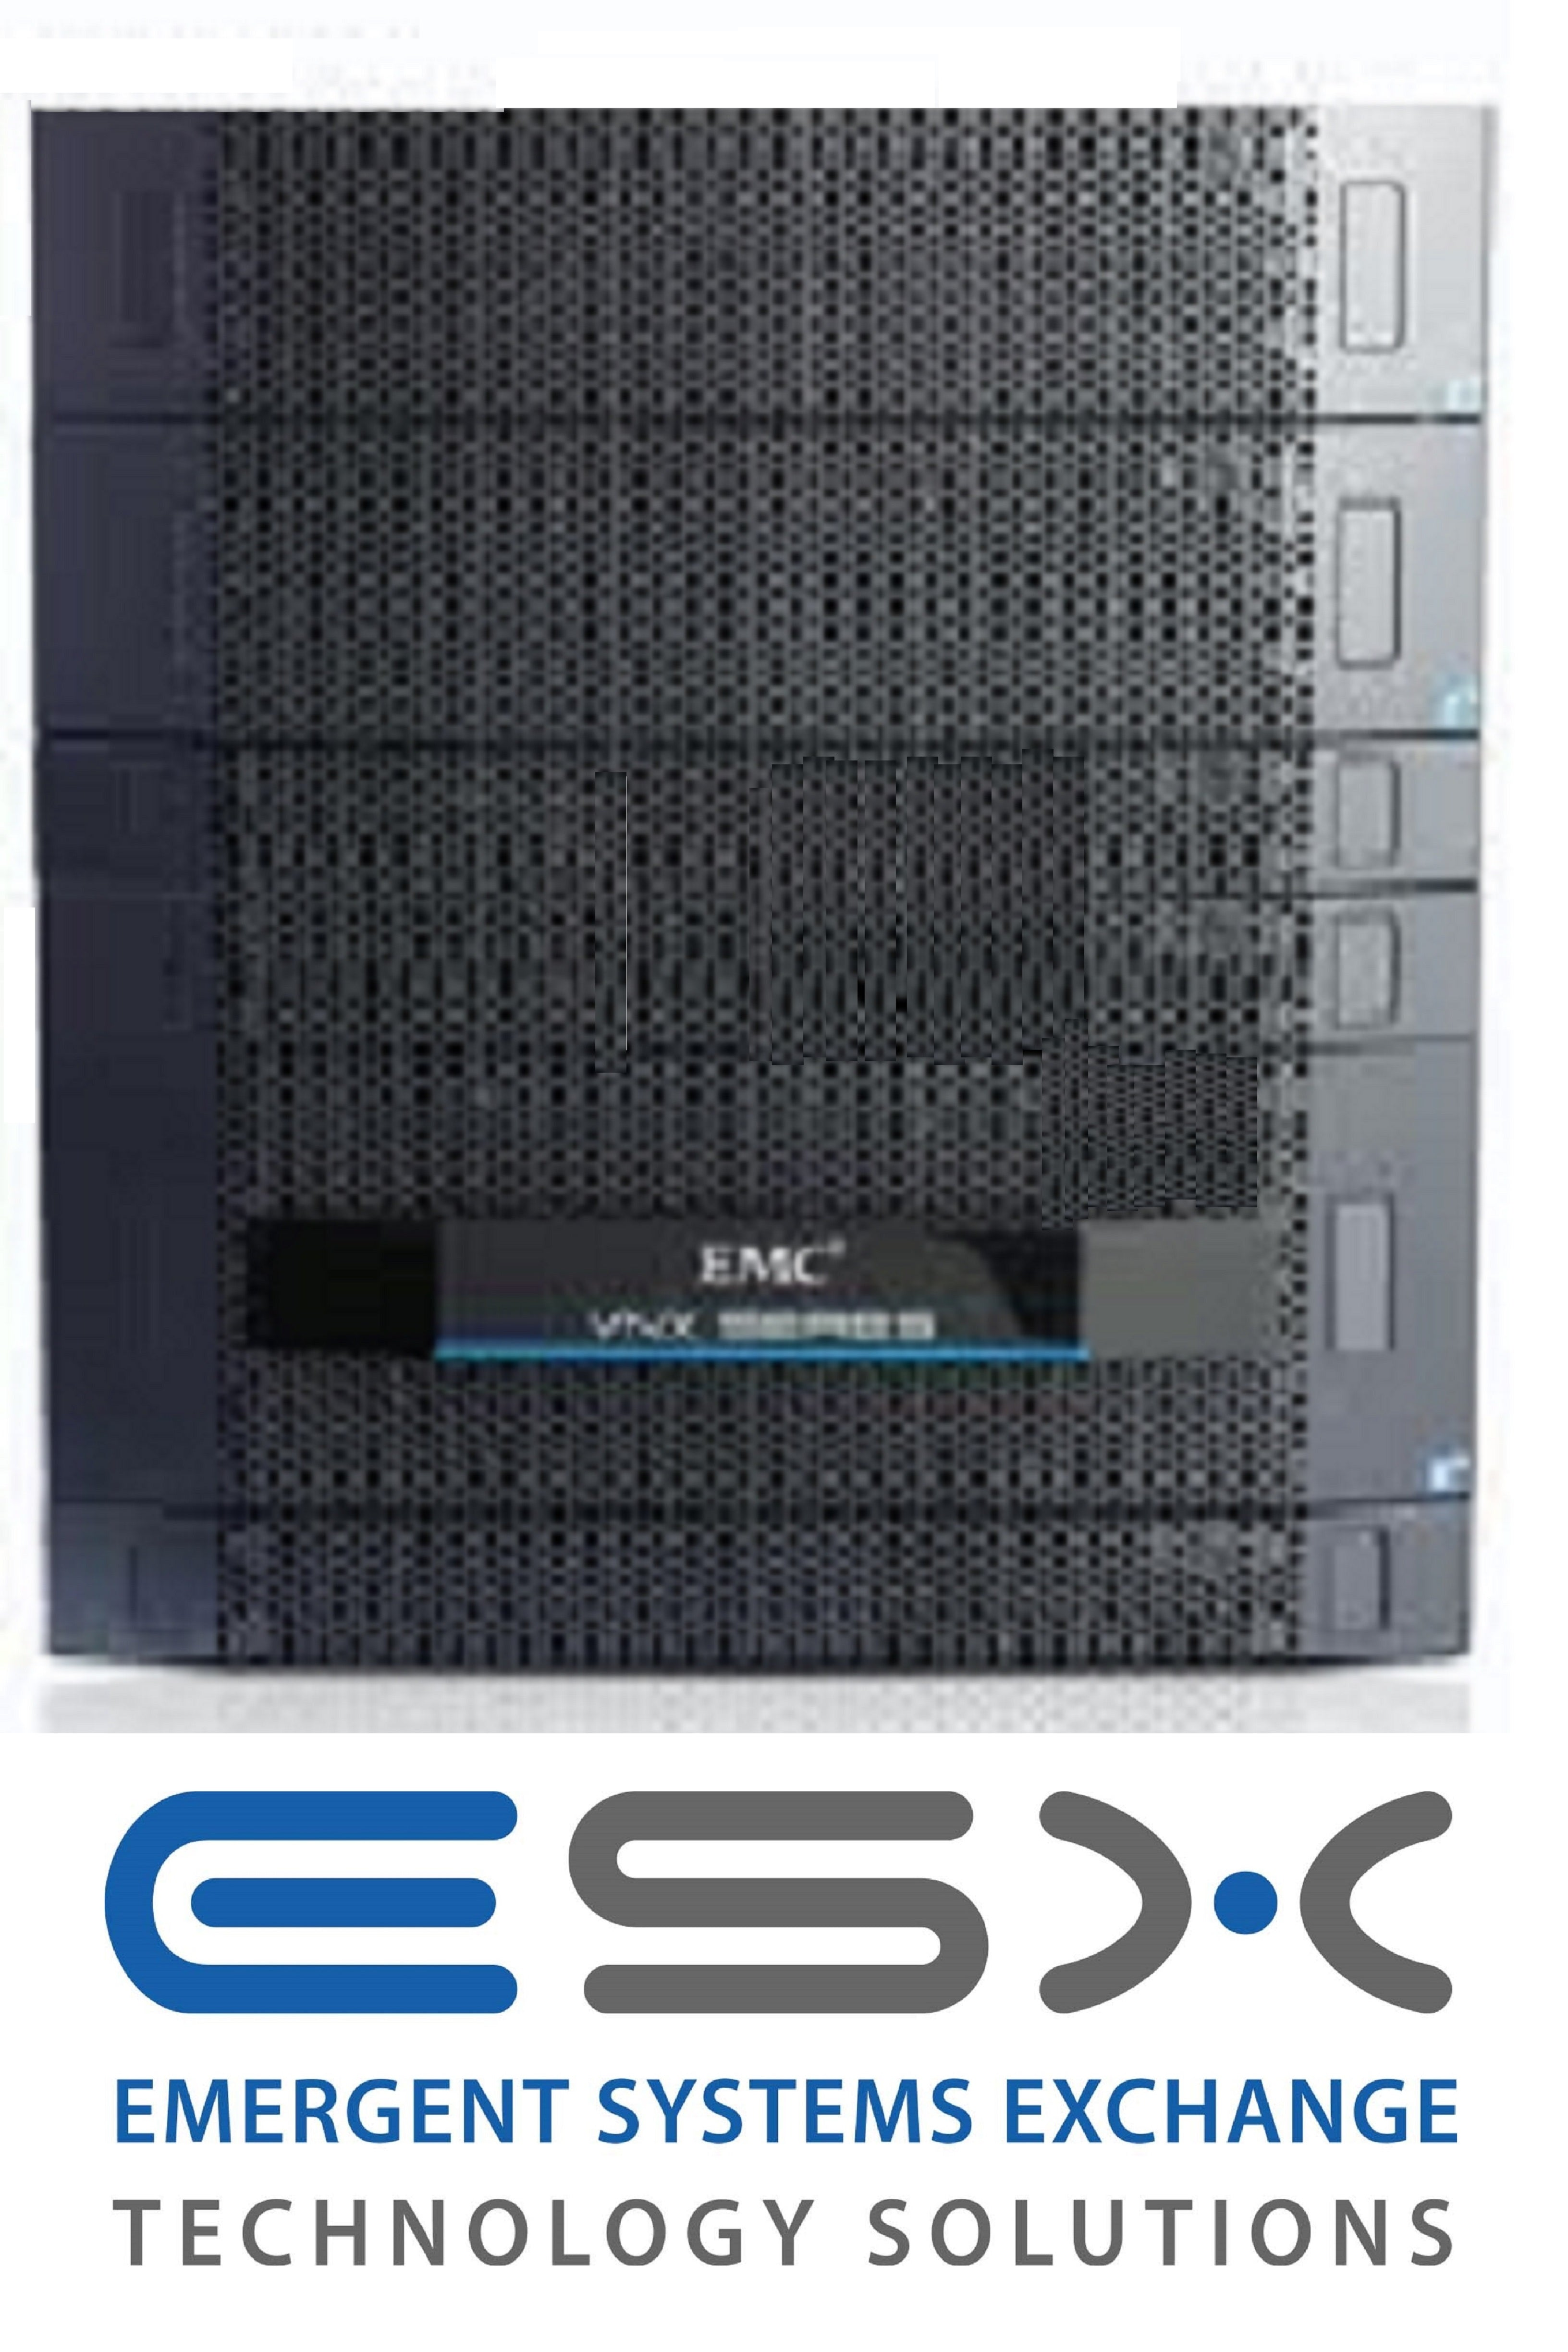 EMC VNX 3U, 15-Bay Disk Array Expansion (DAE) – 15 x 300GB 15K, 2000 iops